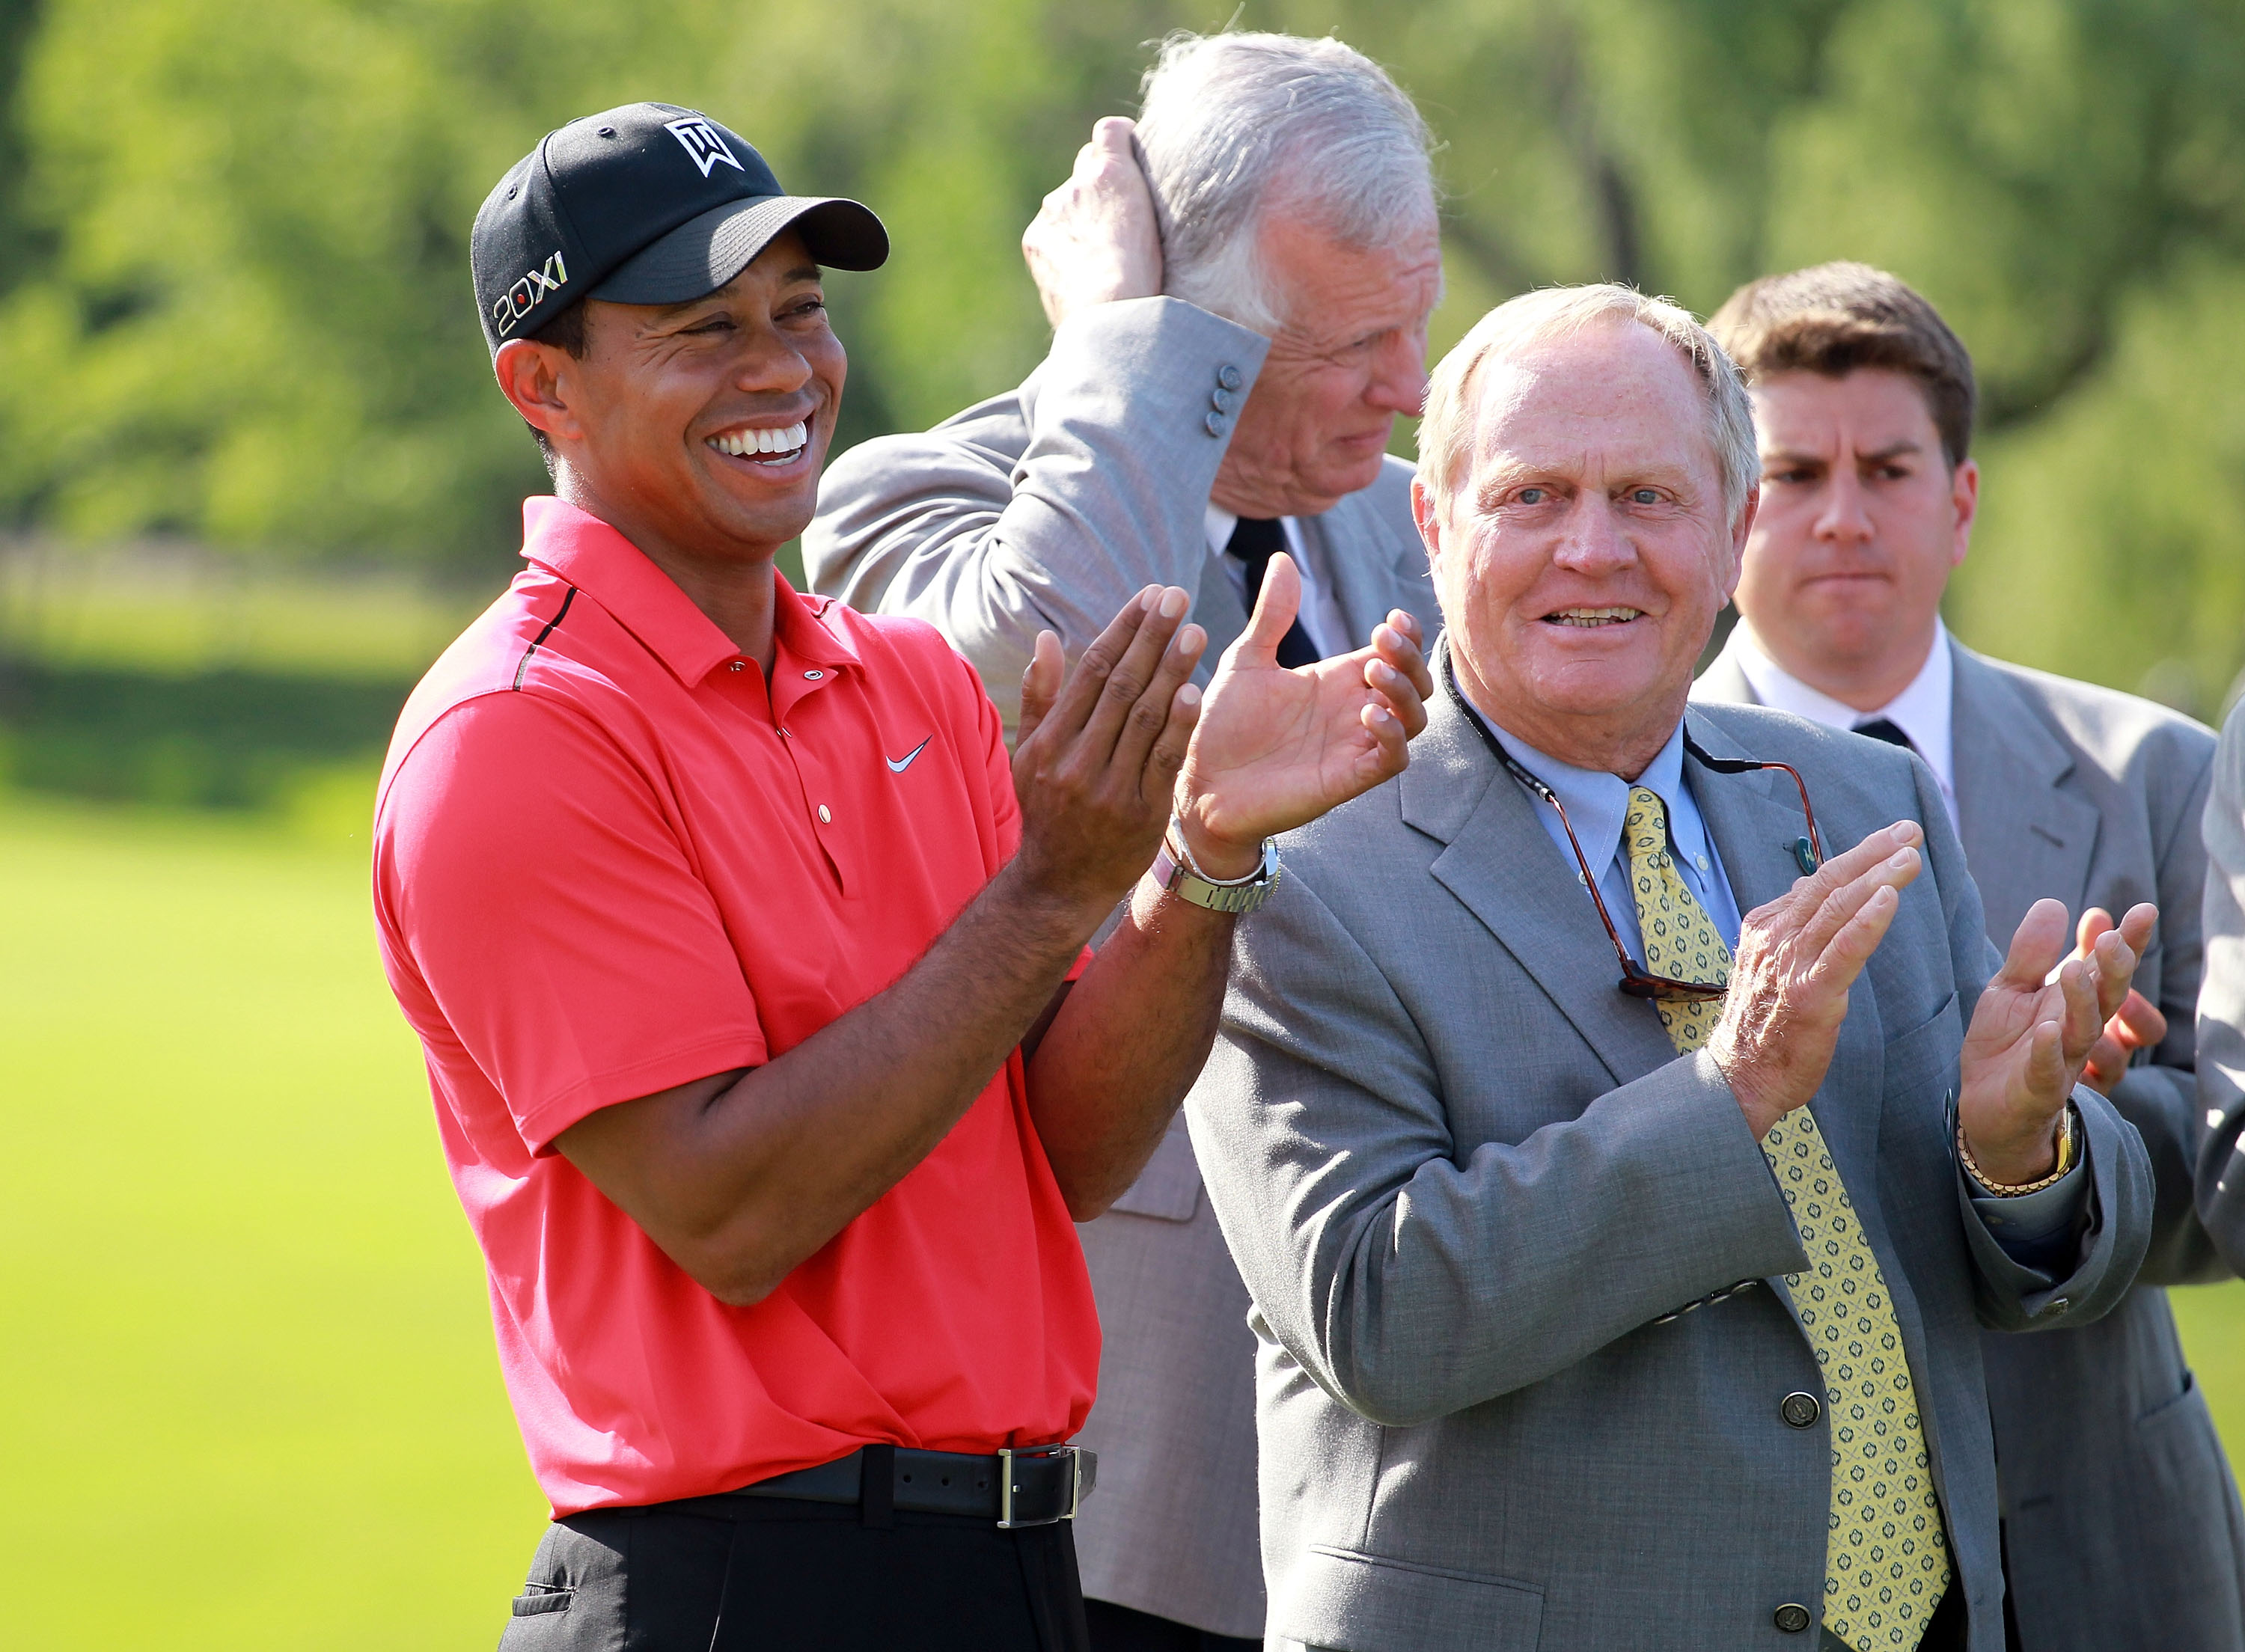 Tiger Woods is back this weekend at The Memorial Tournament, where in 2012 he hit the greatest shot Jack Nicklaus has ever seen.